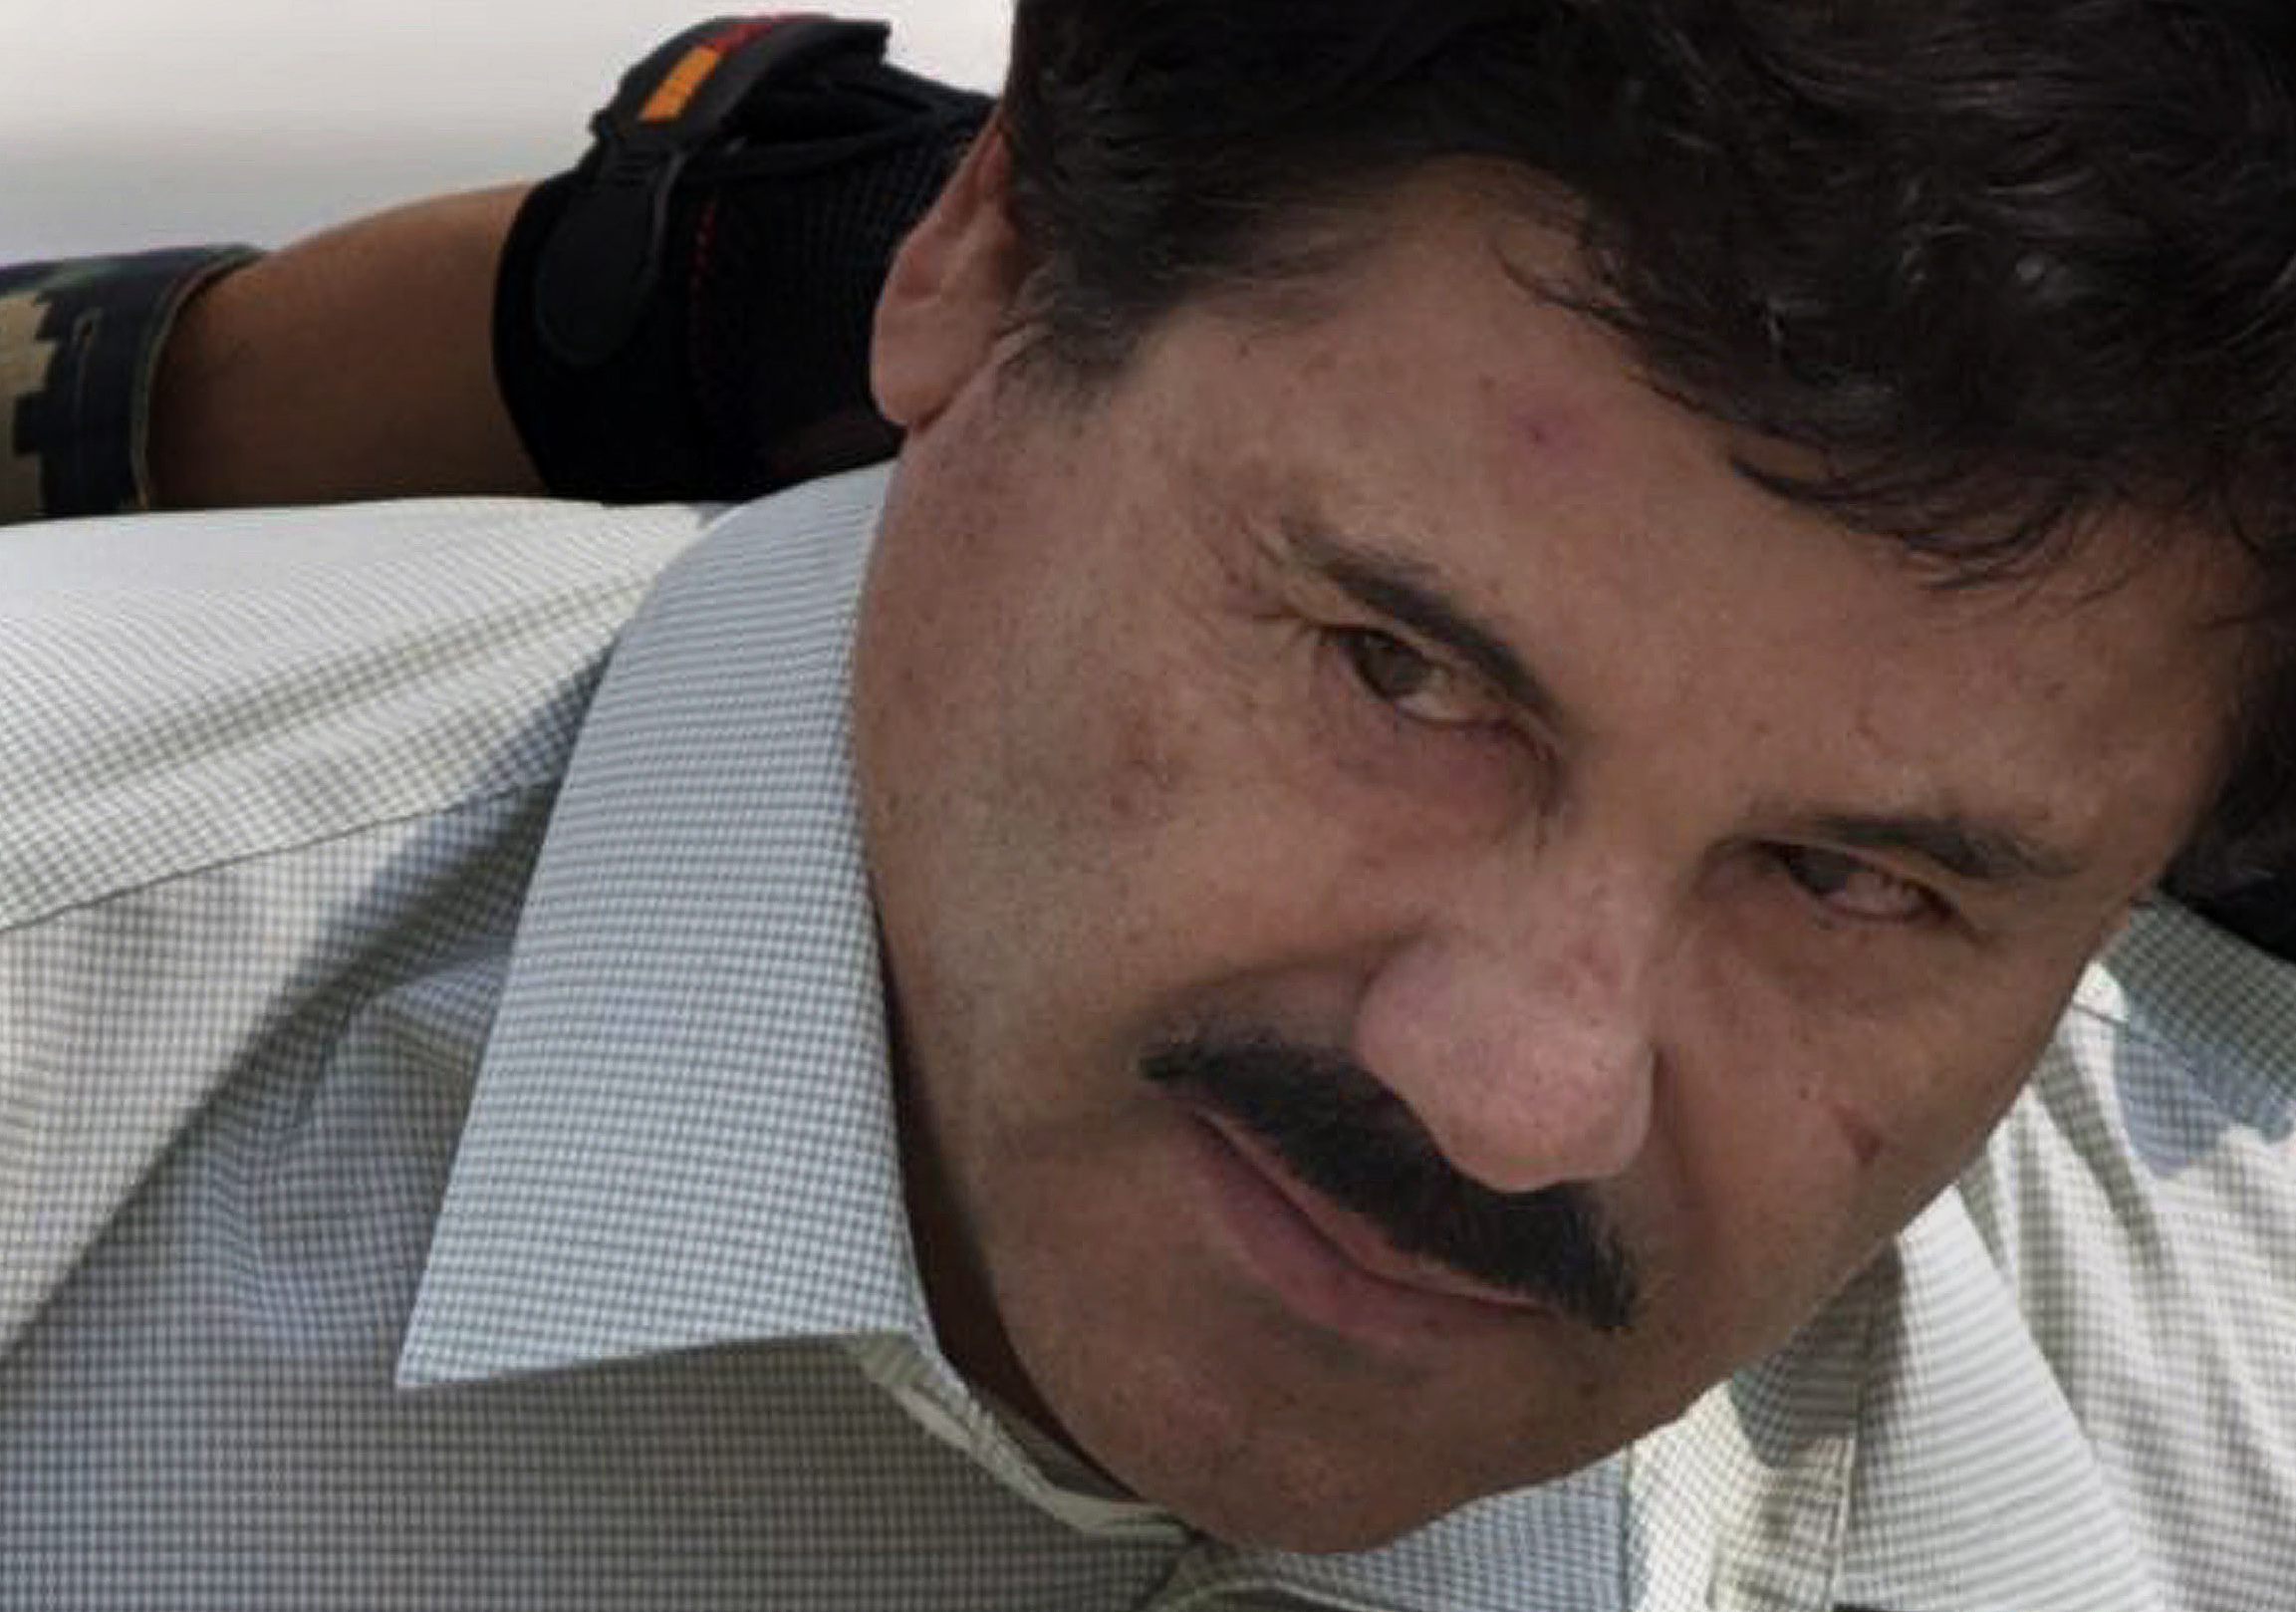 The harsh truth about El Chapo's arrest: Everything is still